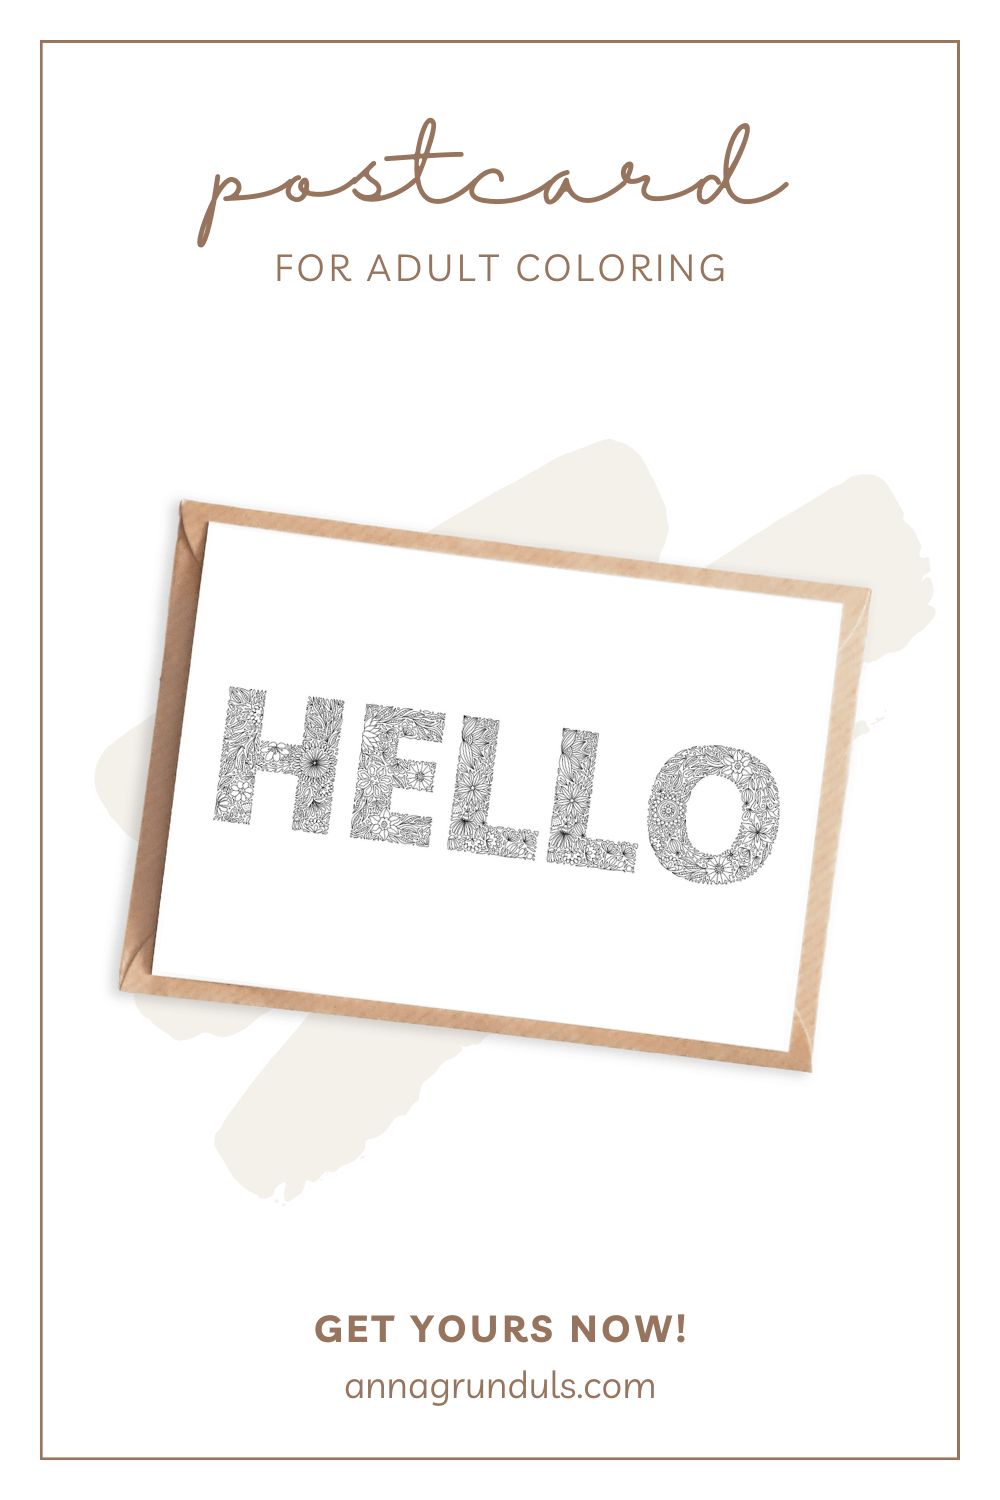 hello postcard for adult coloring pinterest pin